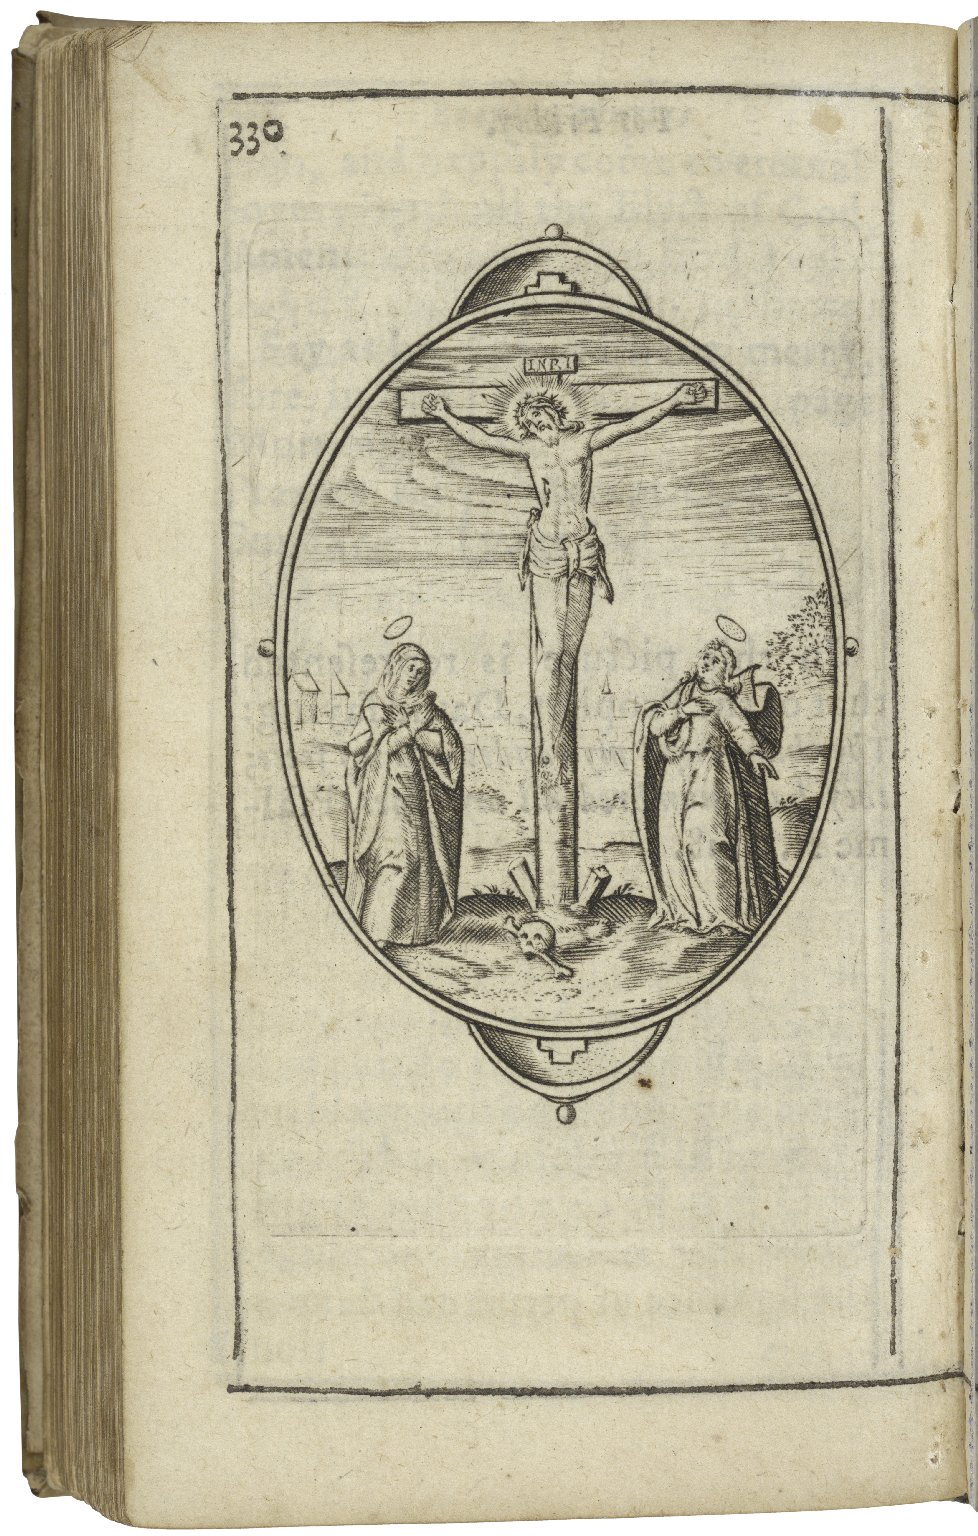 A manual of godly praiers and litanies newly annexed taken out of many famous authours and distributed according to the daies of the weeke, with a large and ample exercise for the morning and euening ; whereunto are added the hymnes and praiers for the pr